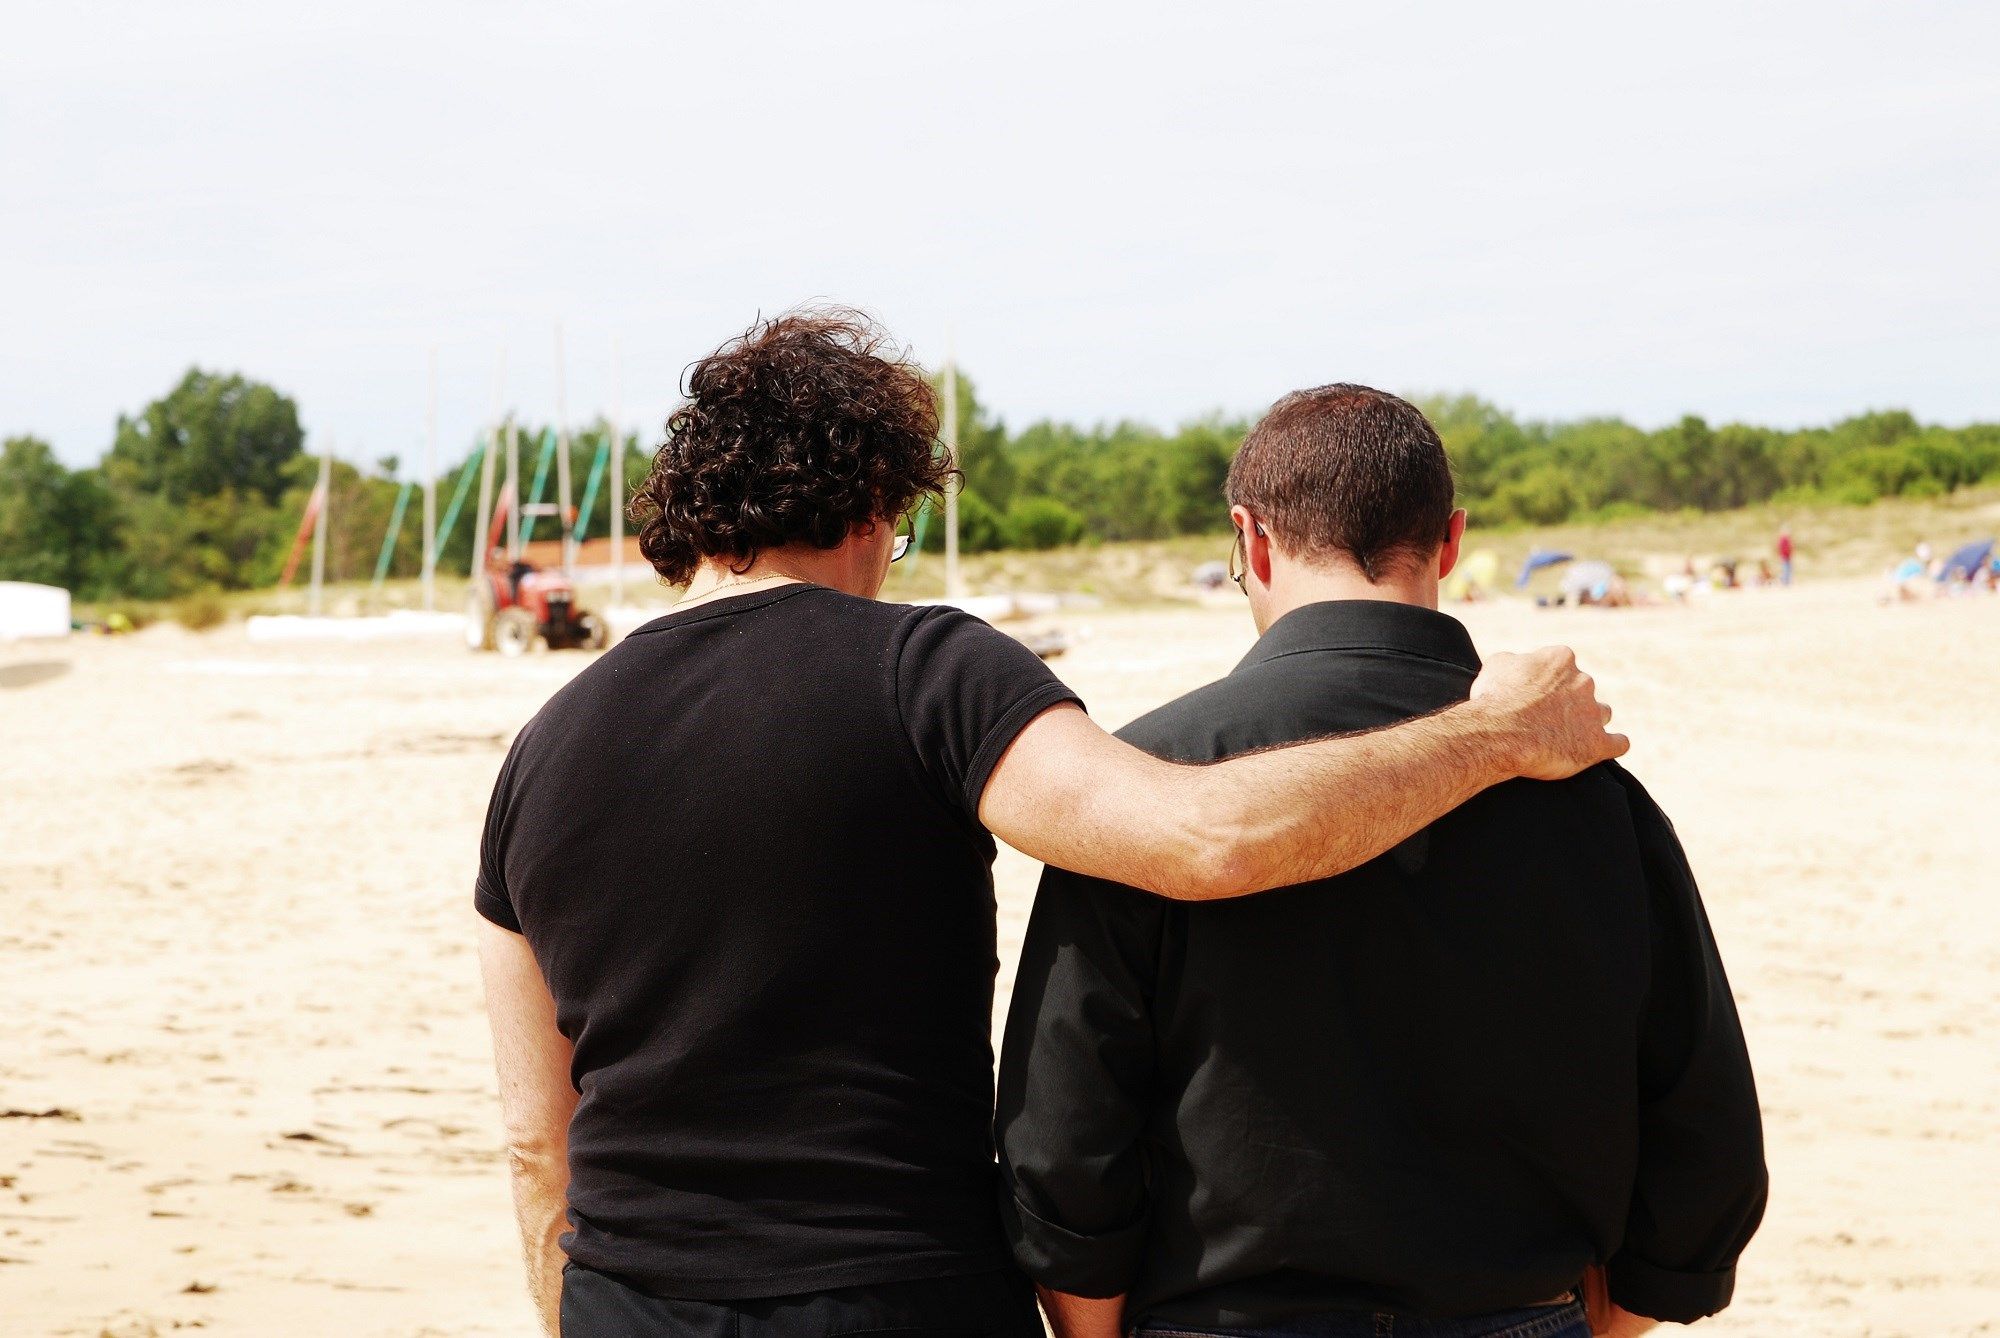 Social Support and Attachment Style May Affect Pain Experiences in Men With HIV